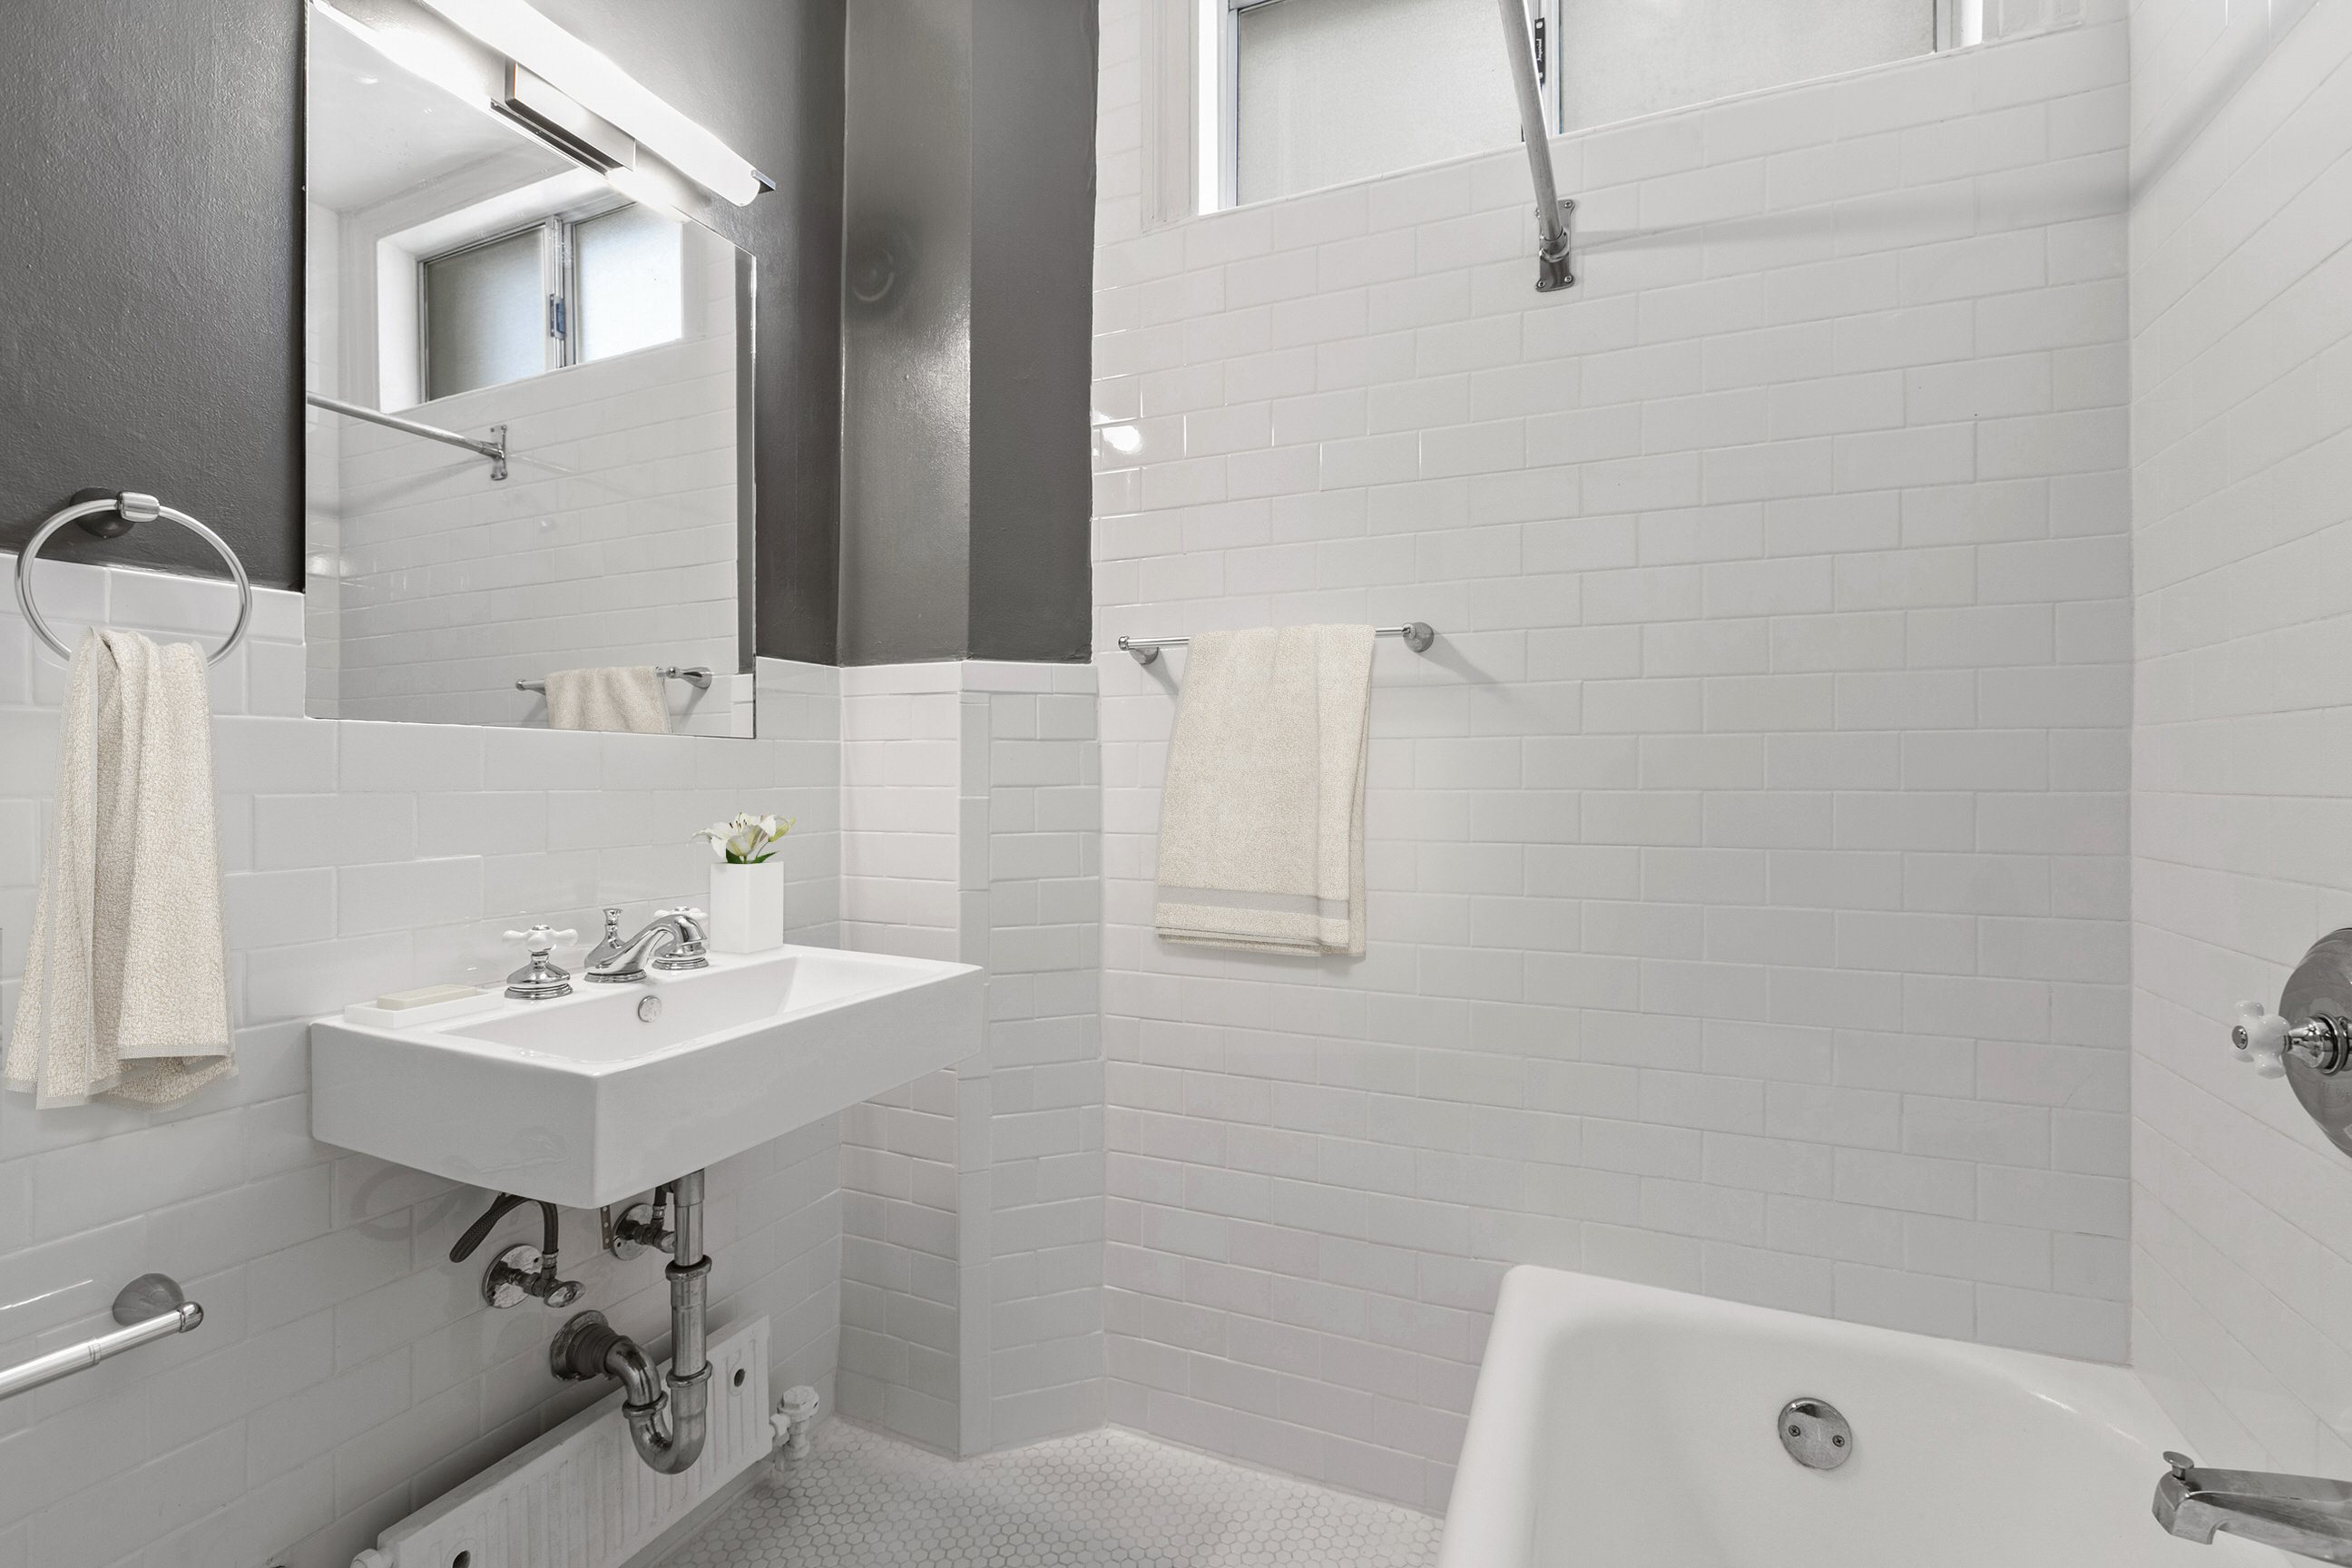 Apartments in Westlake-Wilshire Royale Bathroom with Stylish White Tile, Spacious Countertops, and Large Shower Area